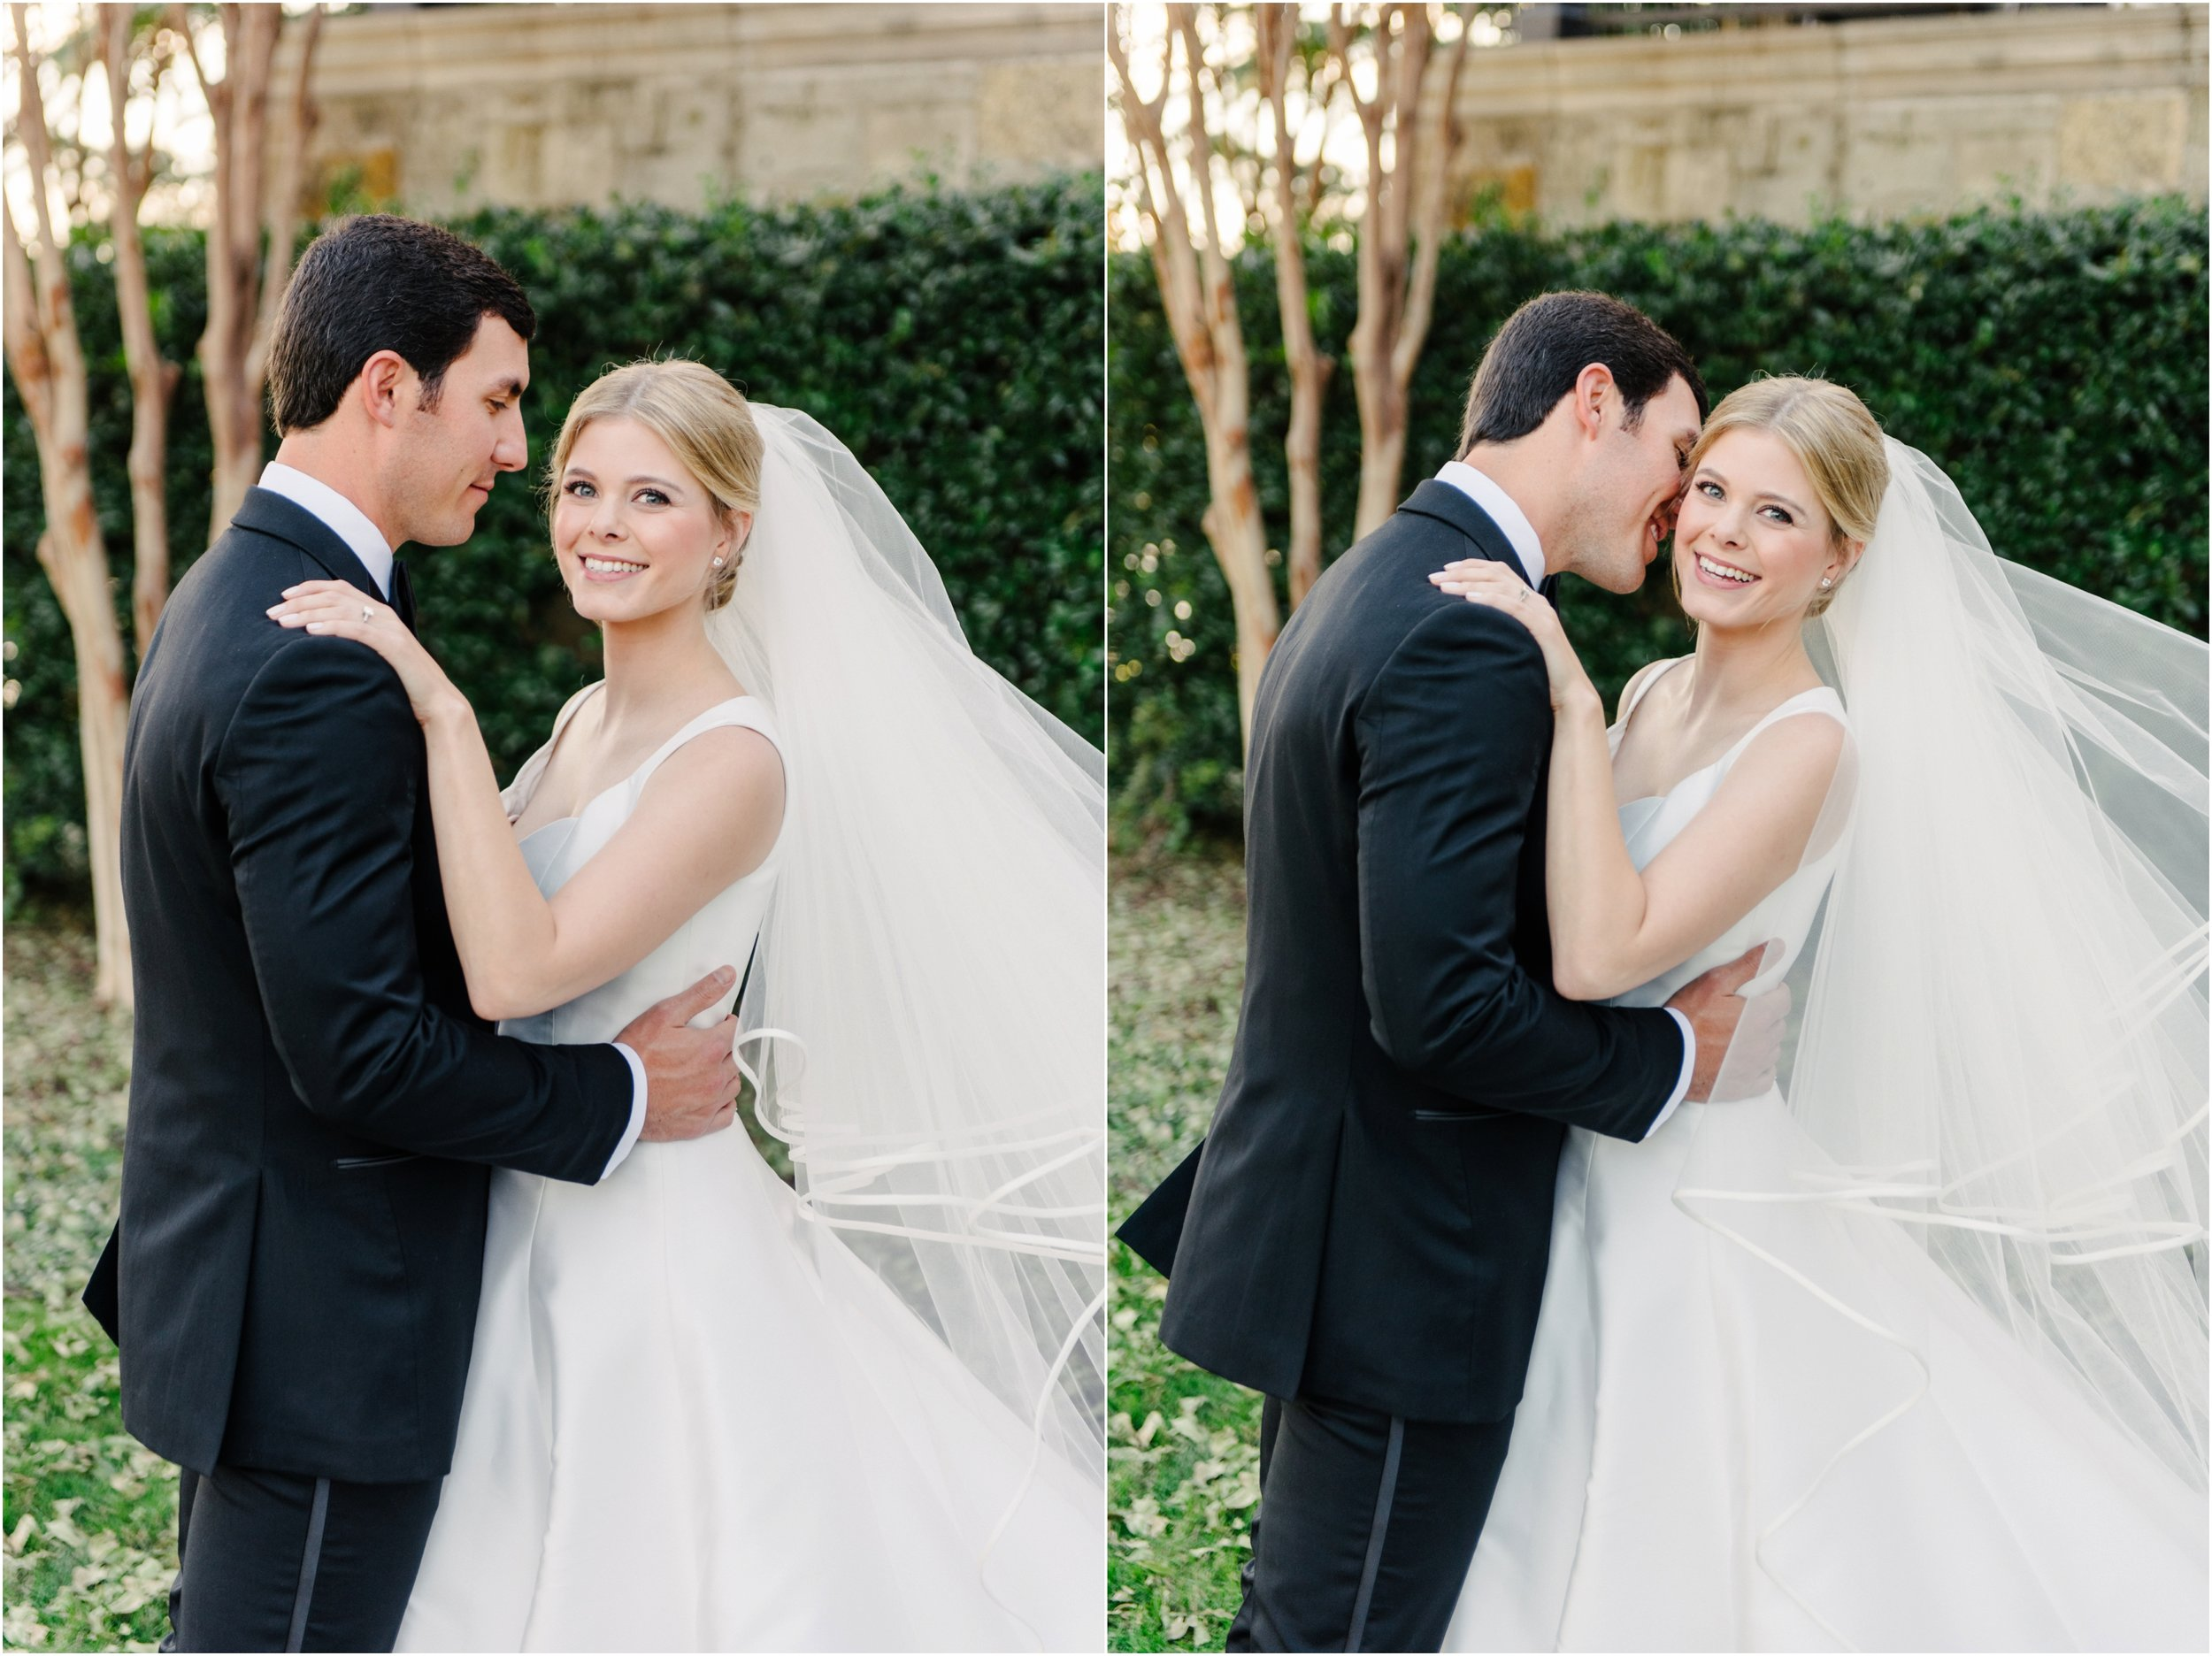 dallasweddingphotographer_DallasCountryClub_Hannah+Matthew_0040.jpg